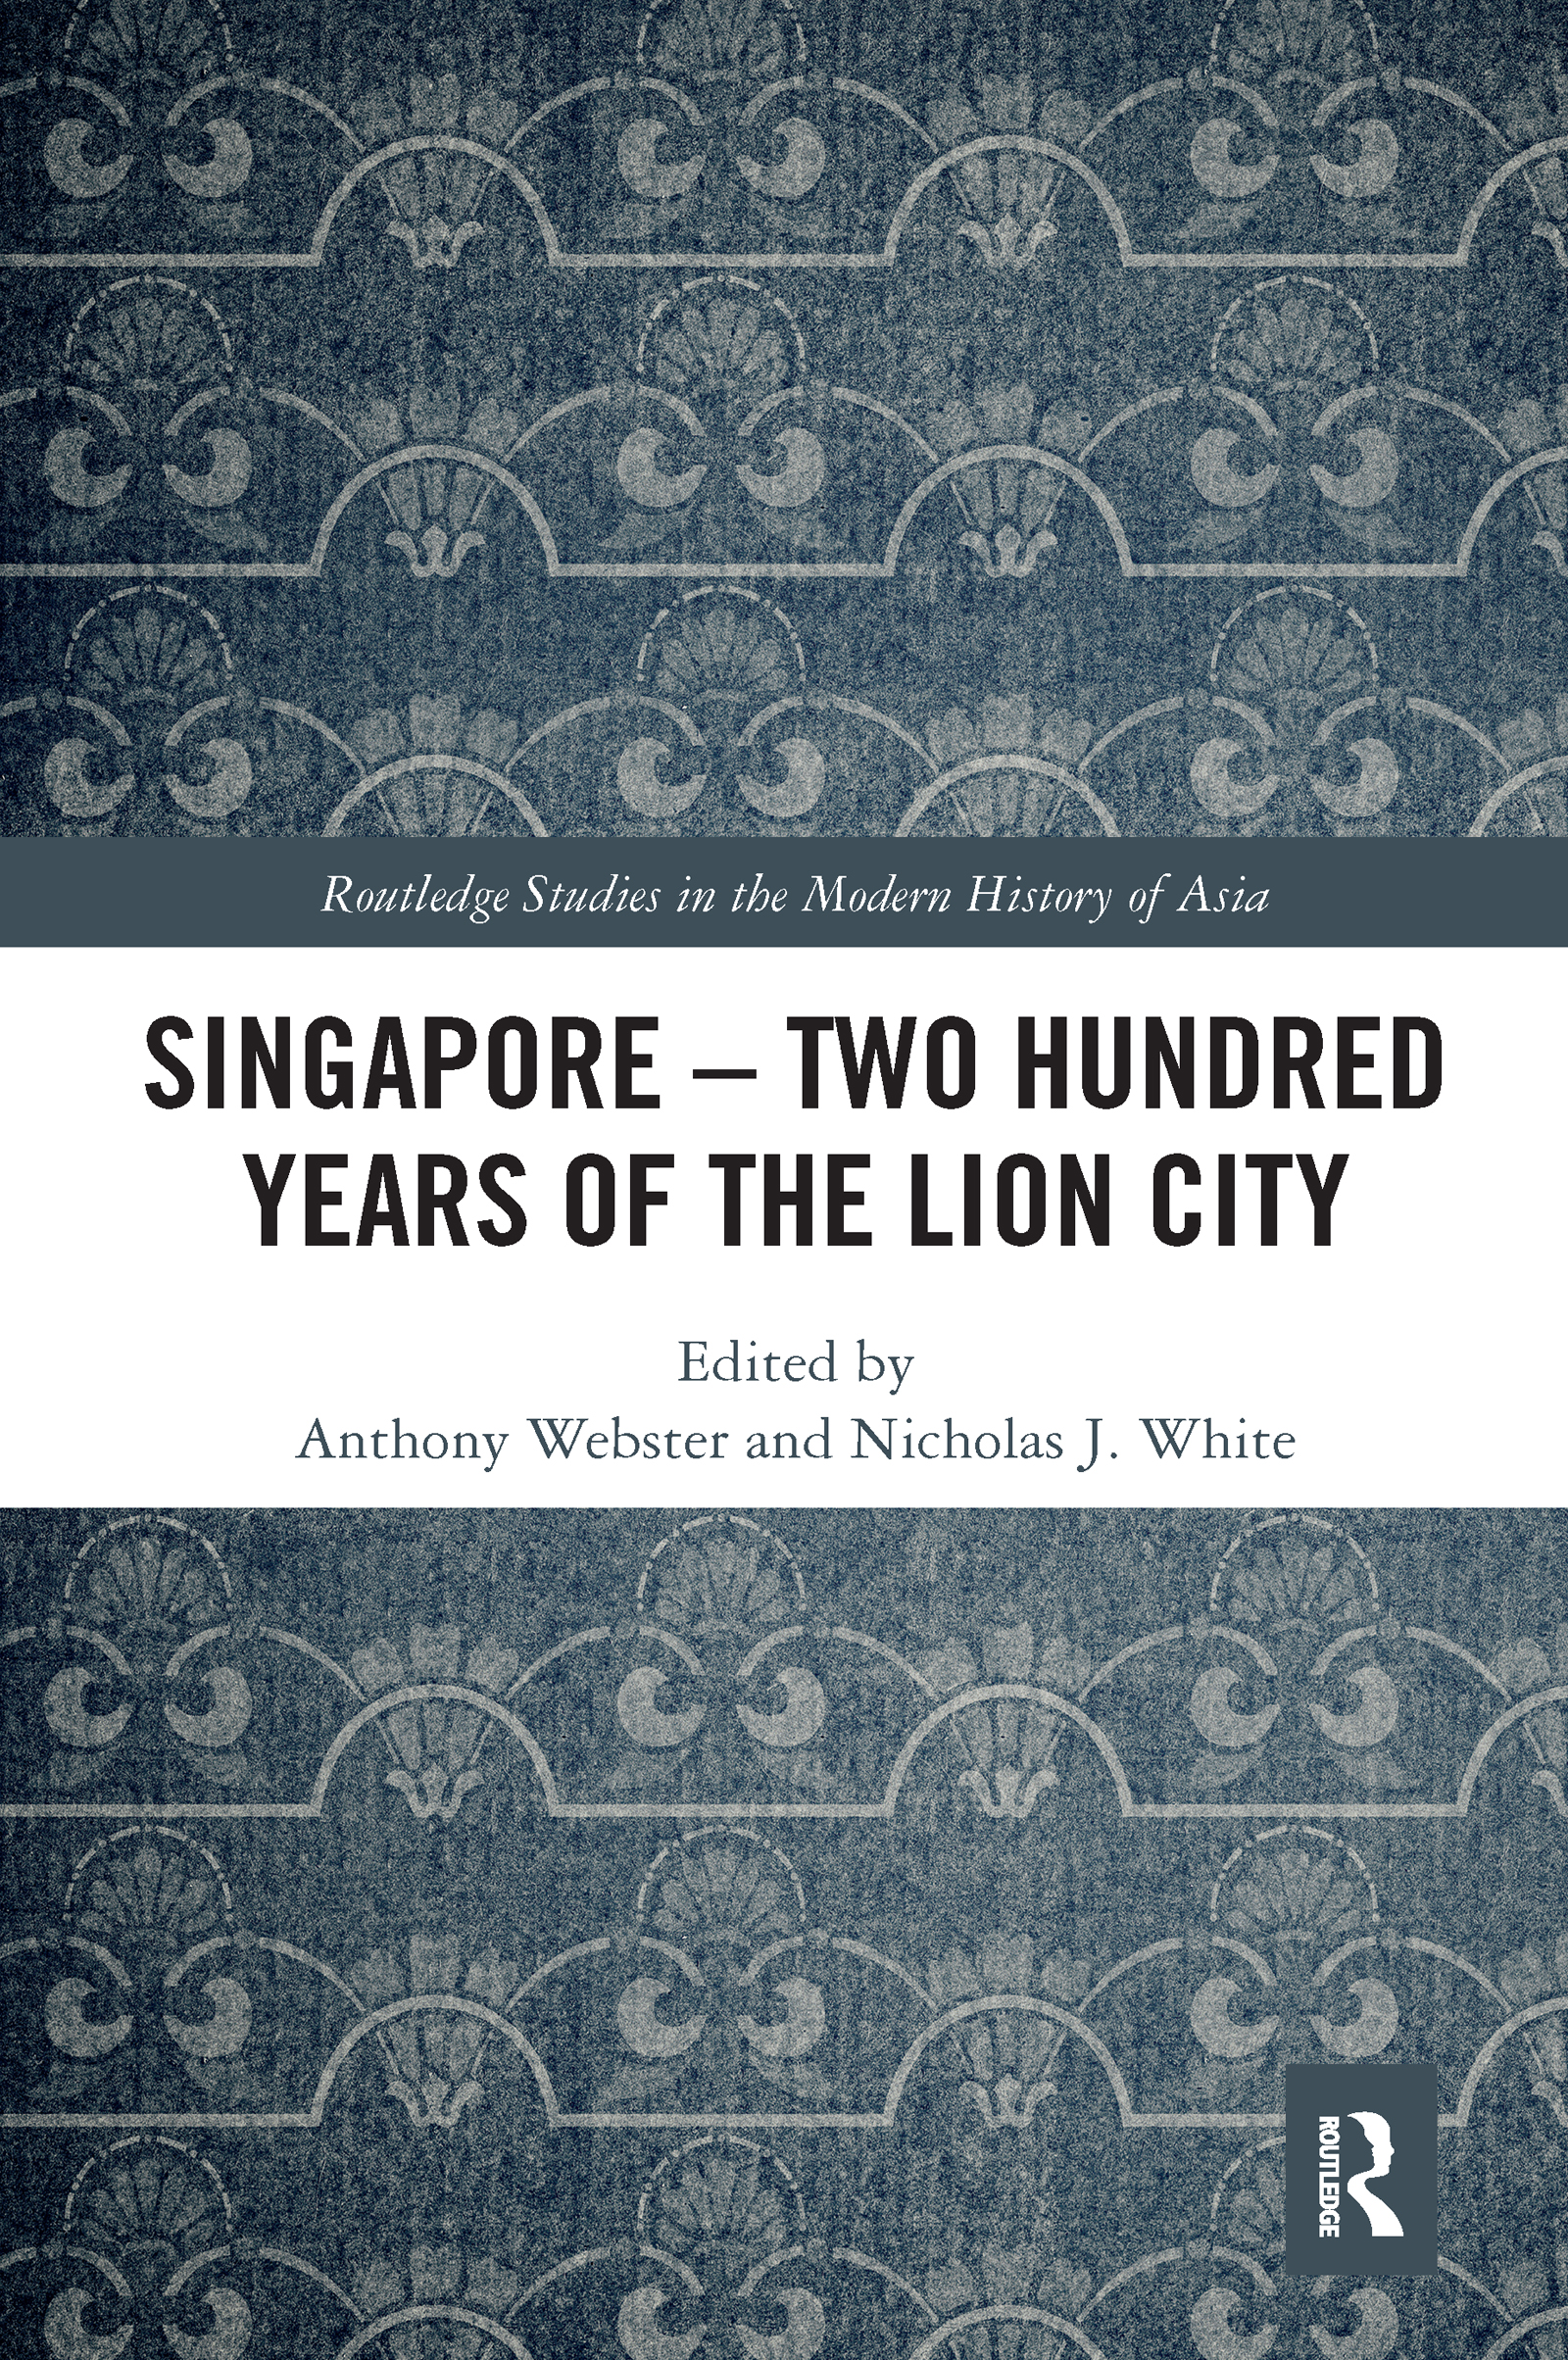 Singapore – Two Hundred Years of the Lion City